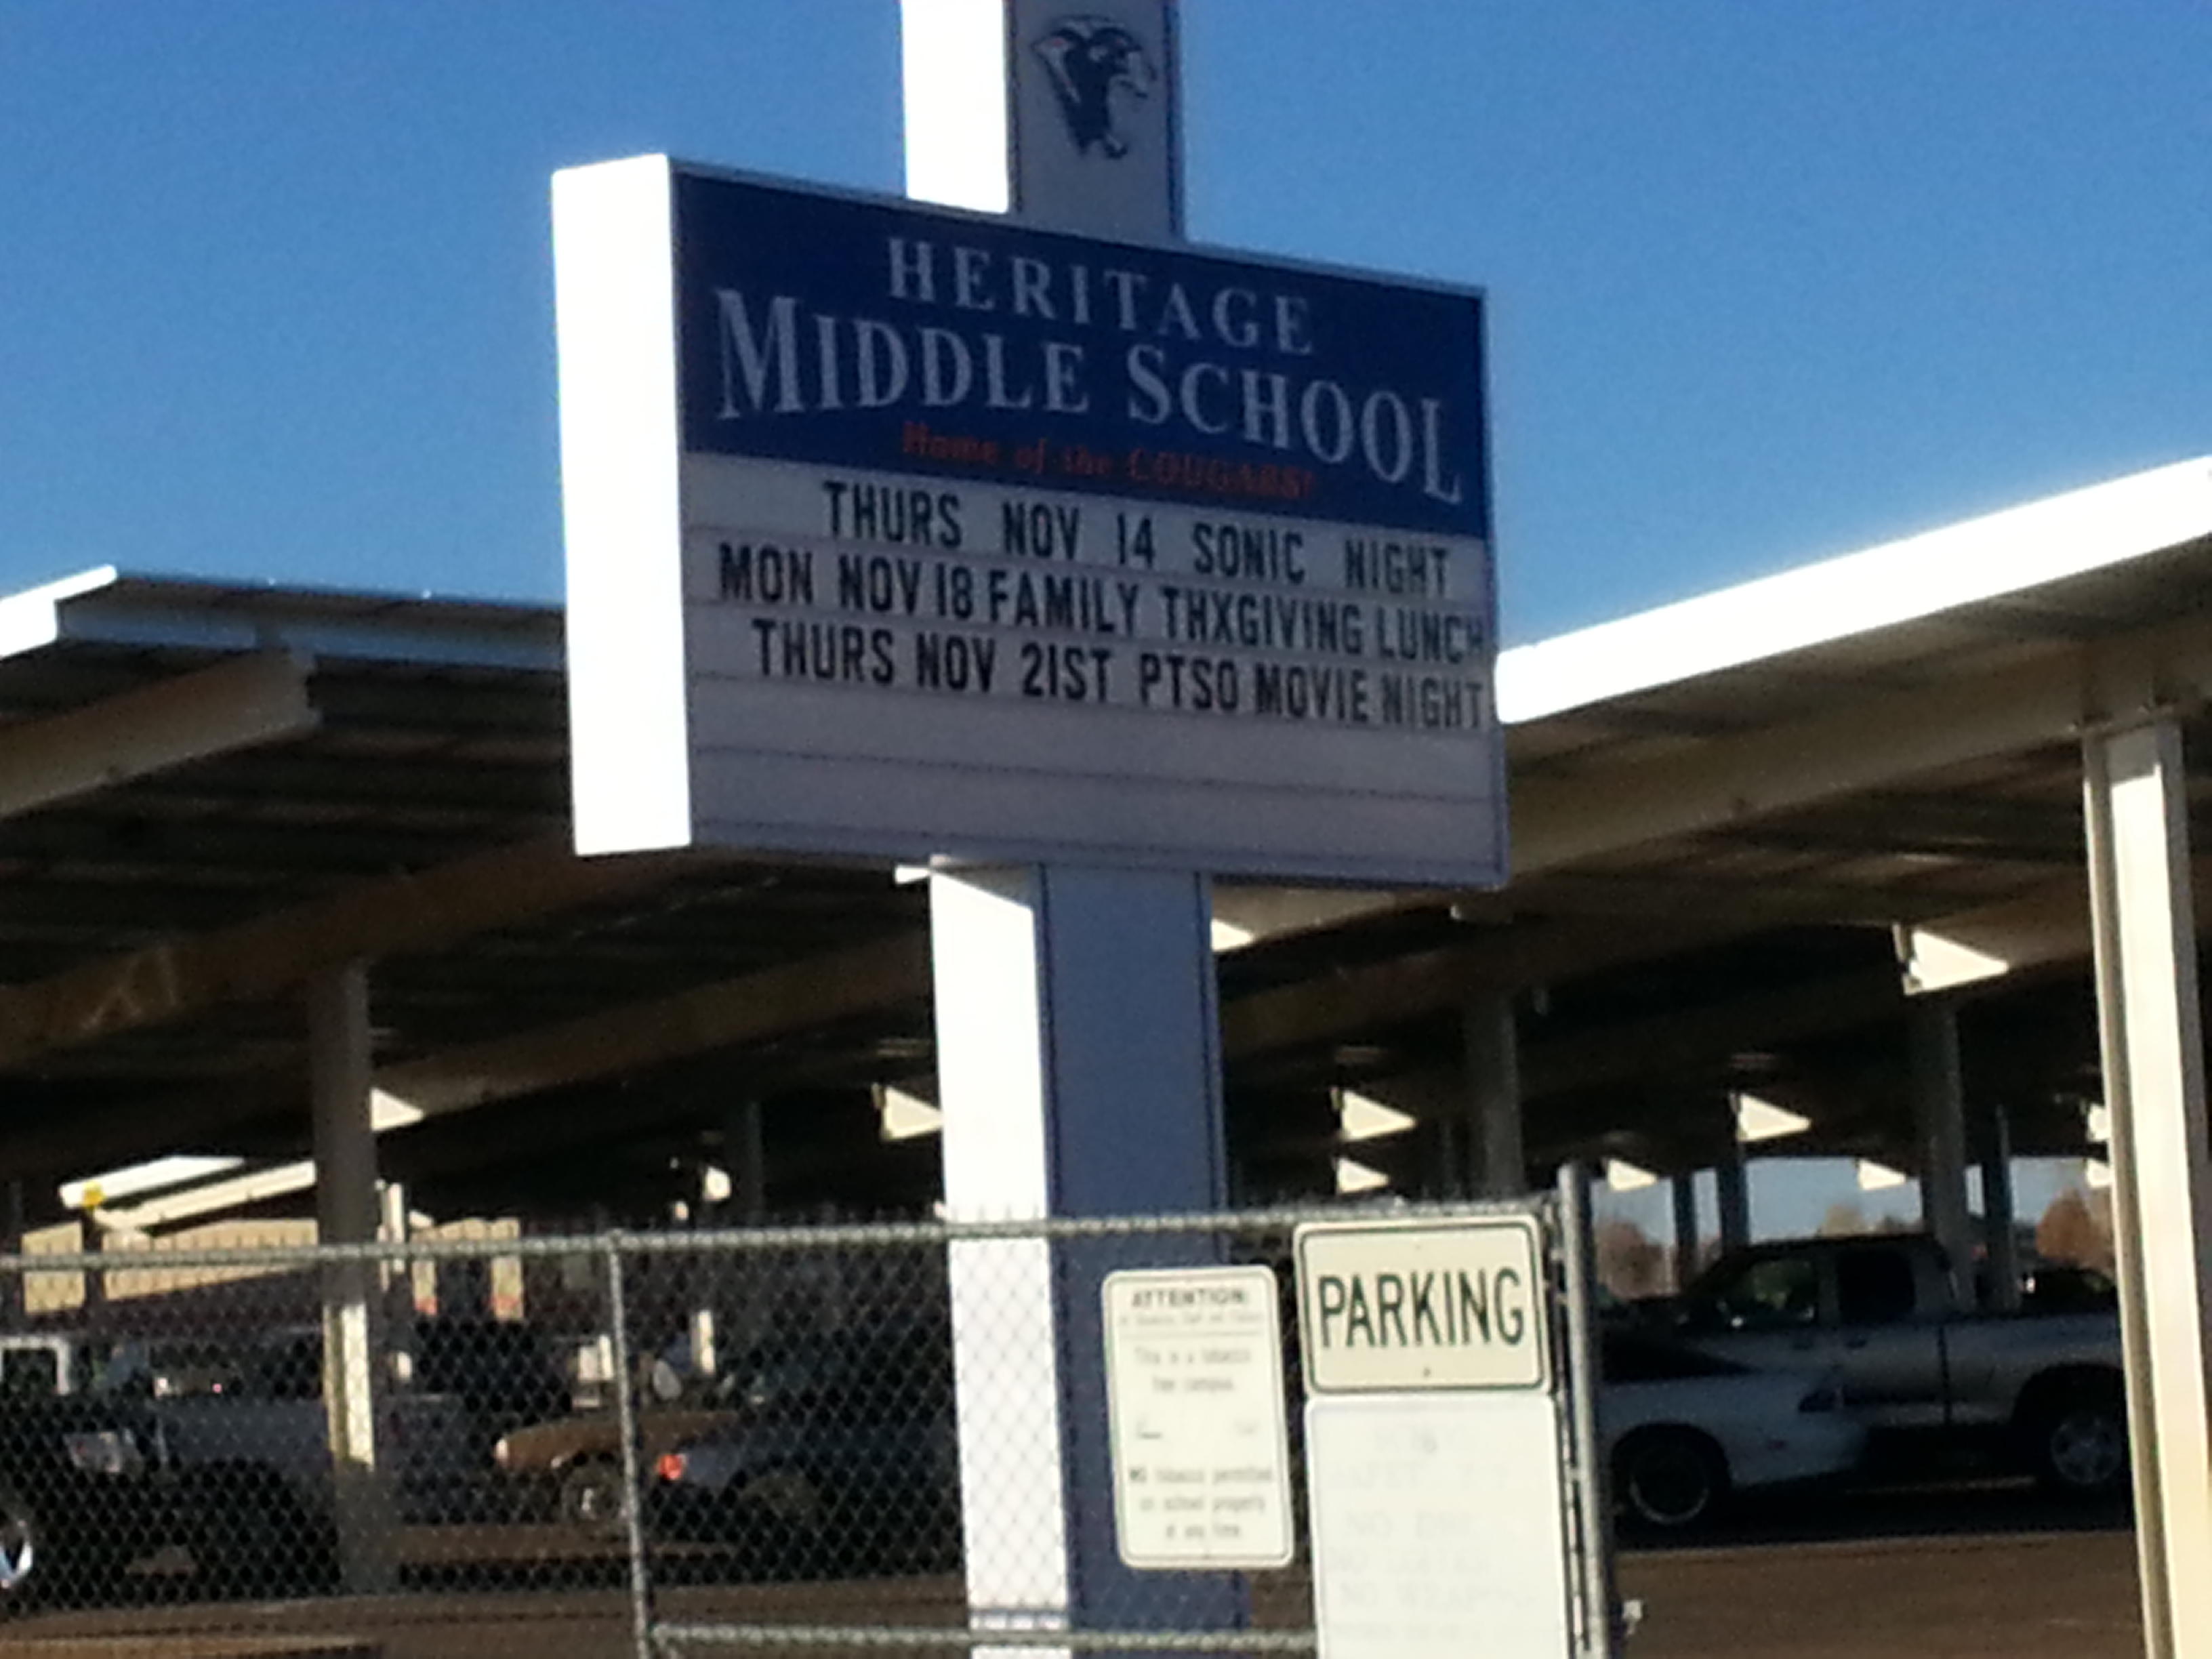 Heritage Middle School - Chino Valley